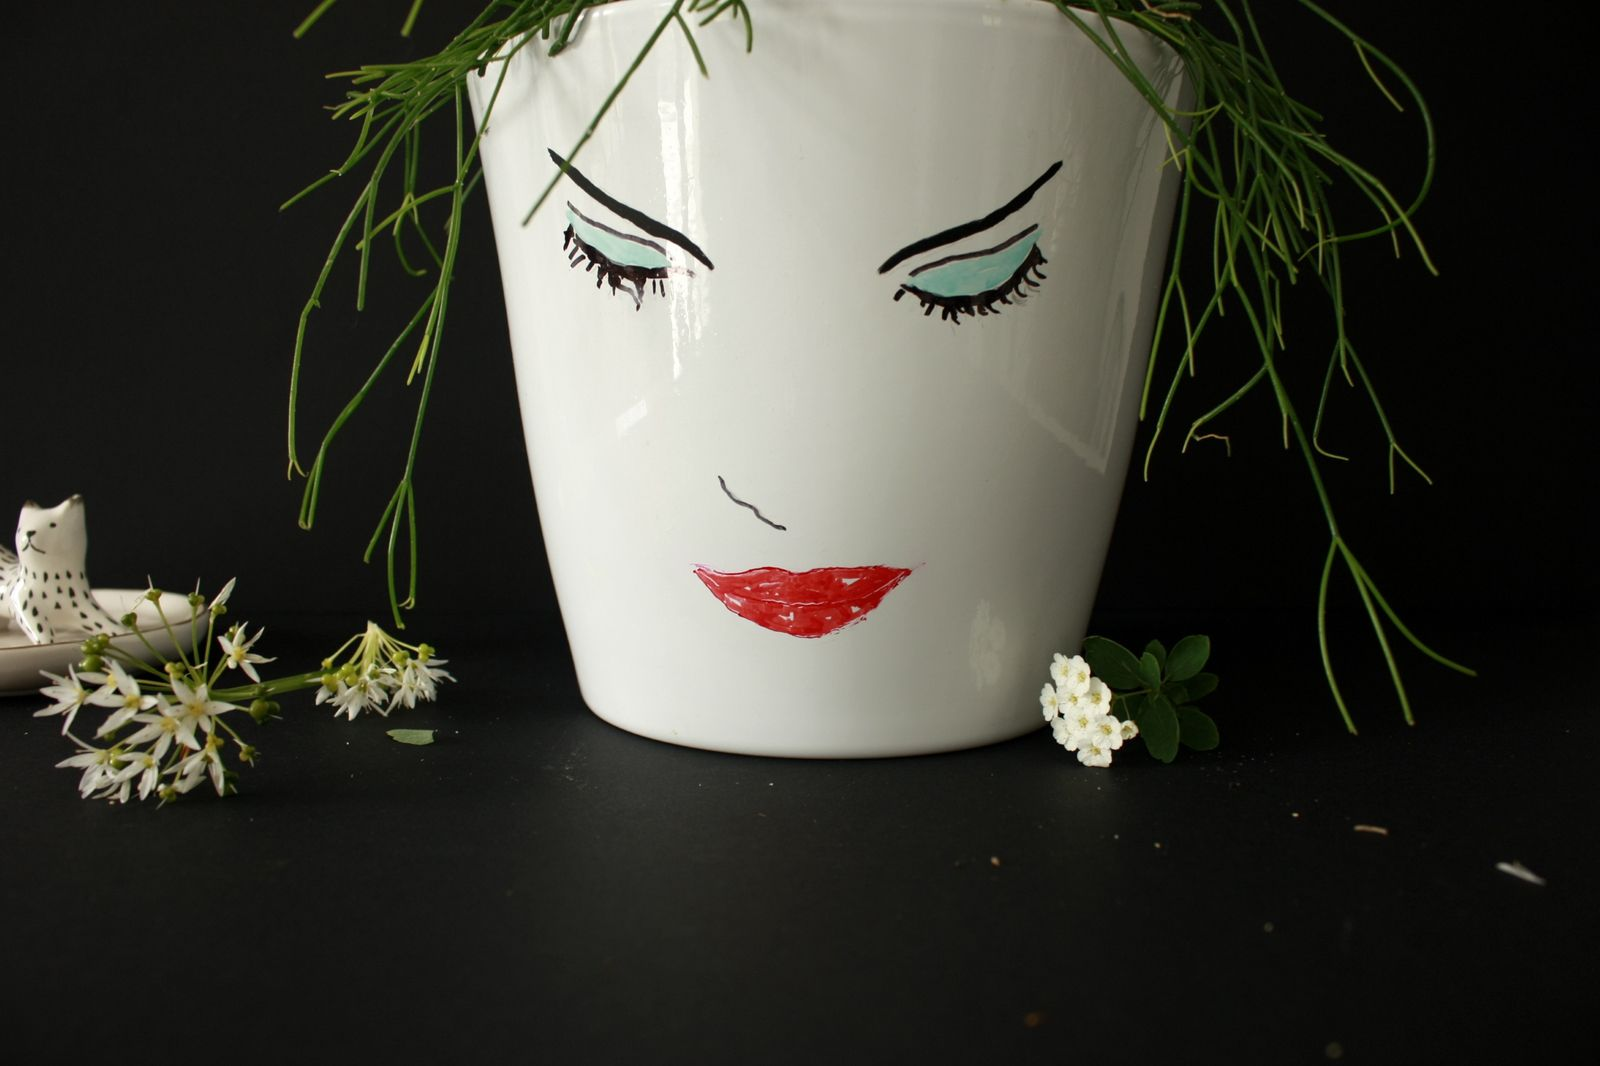 Customiser un pot de fleur ,esquisse en noir et blanc  !!